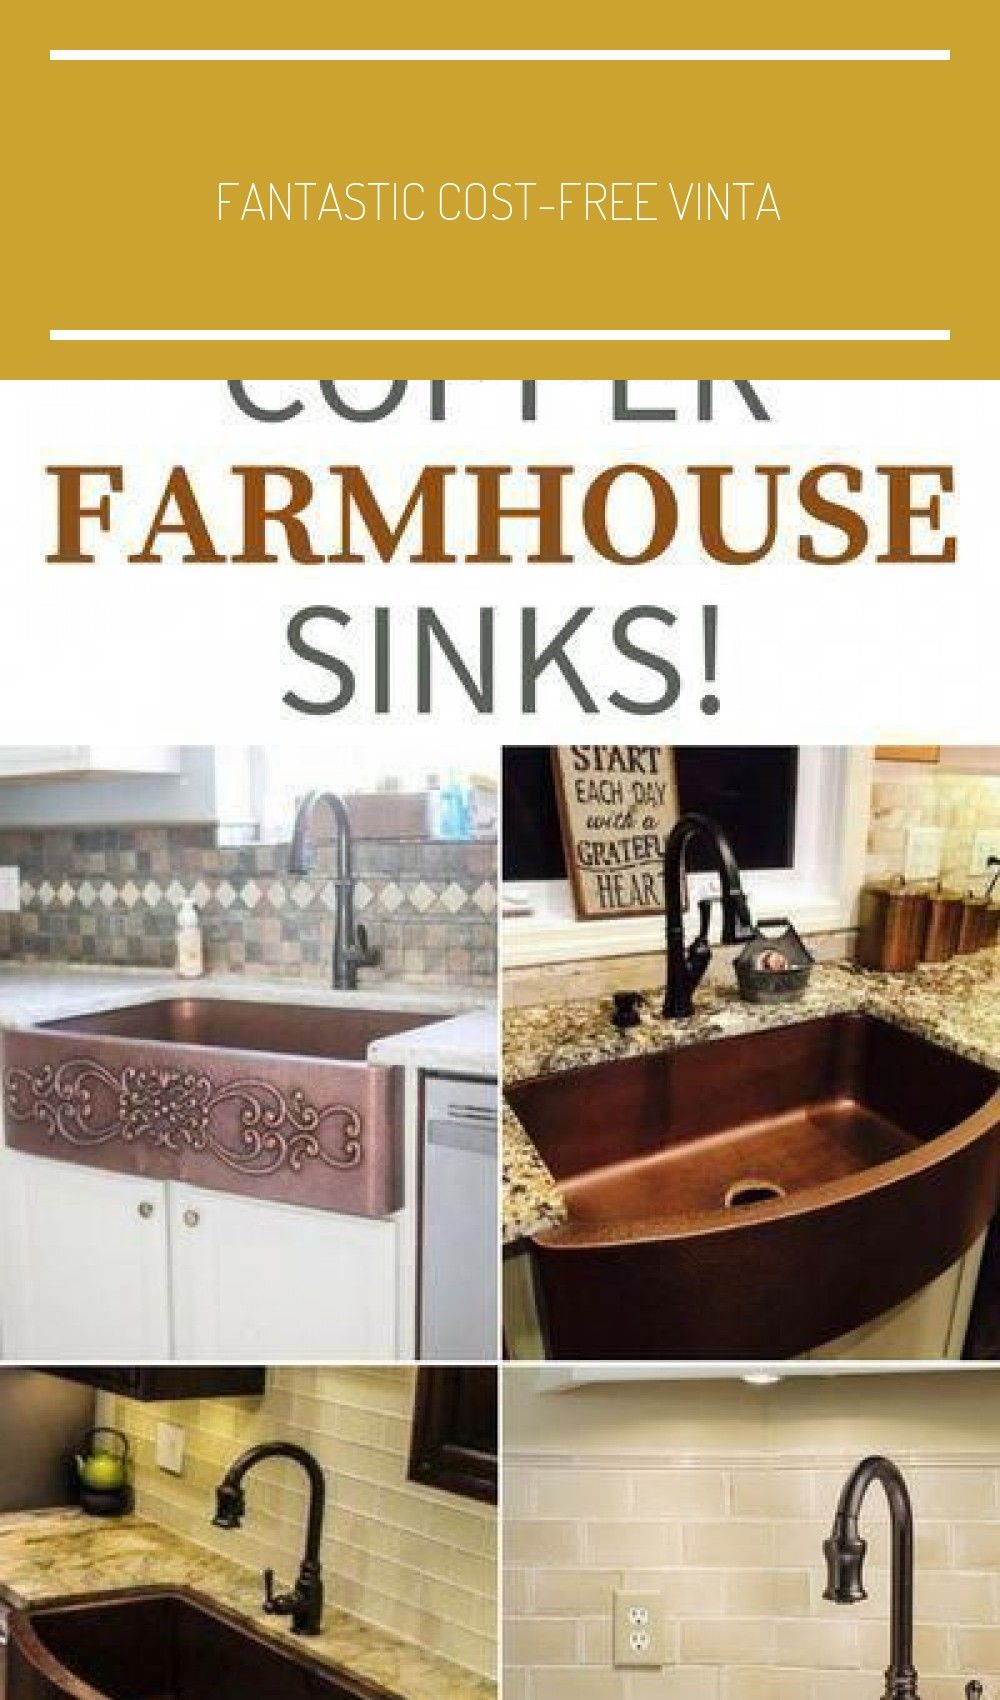 Fantastic Cost Free Vintage Farmhouse Sink Thoughts Being From